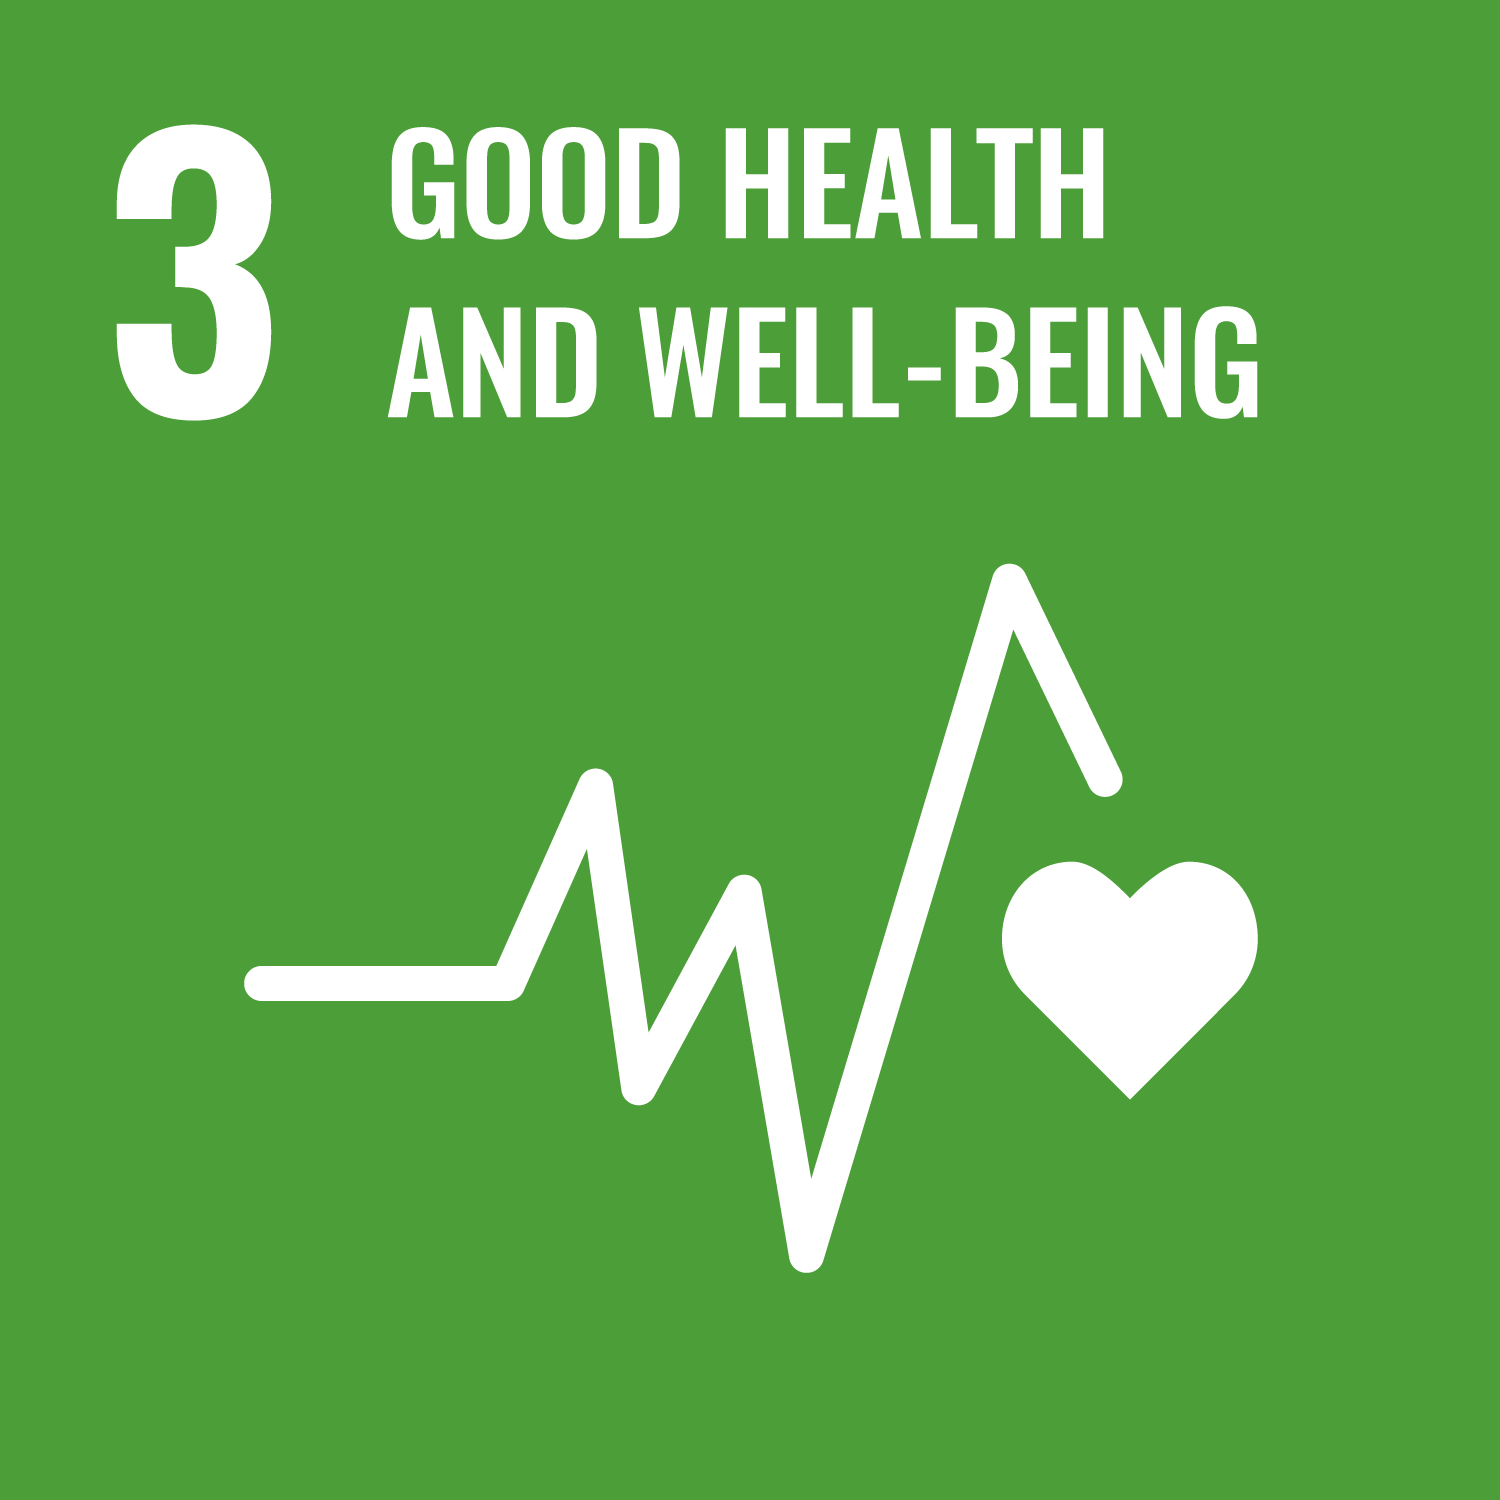 Logo featuring Good Health and Well-Being